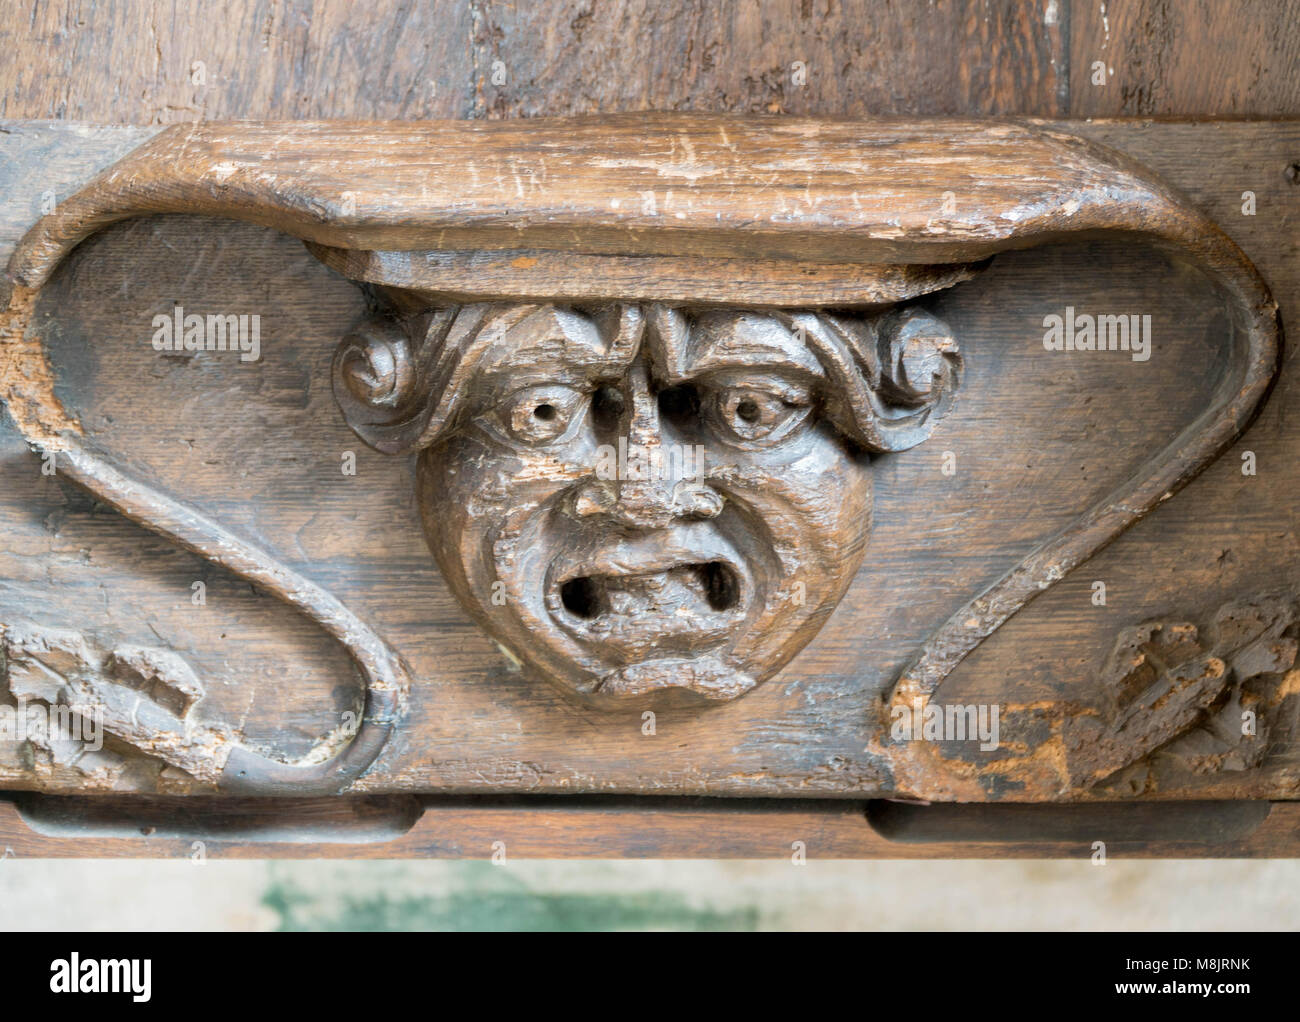 Misericord with carving of open mouthed male head. St Cuthbert Church Holme Lacy Herefordshire UK. March 2018. - Stock Image